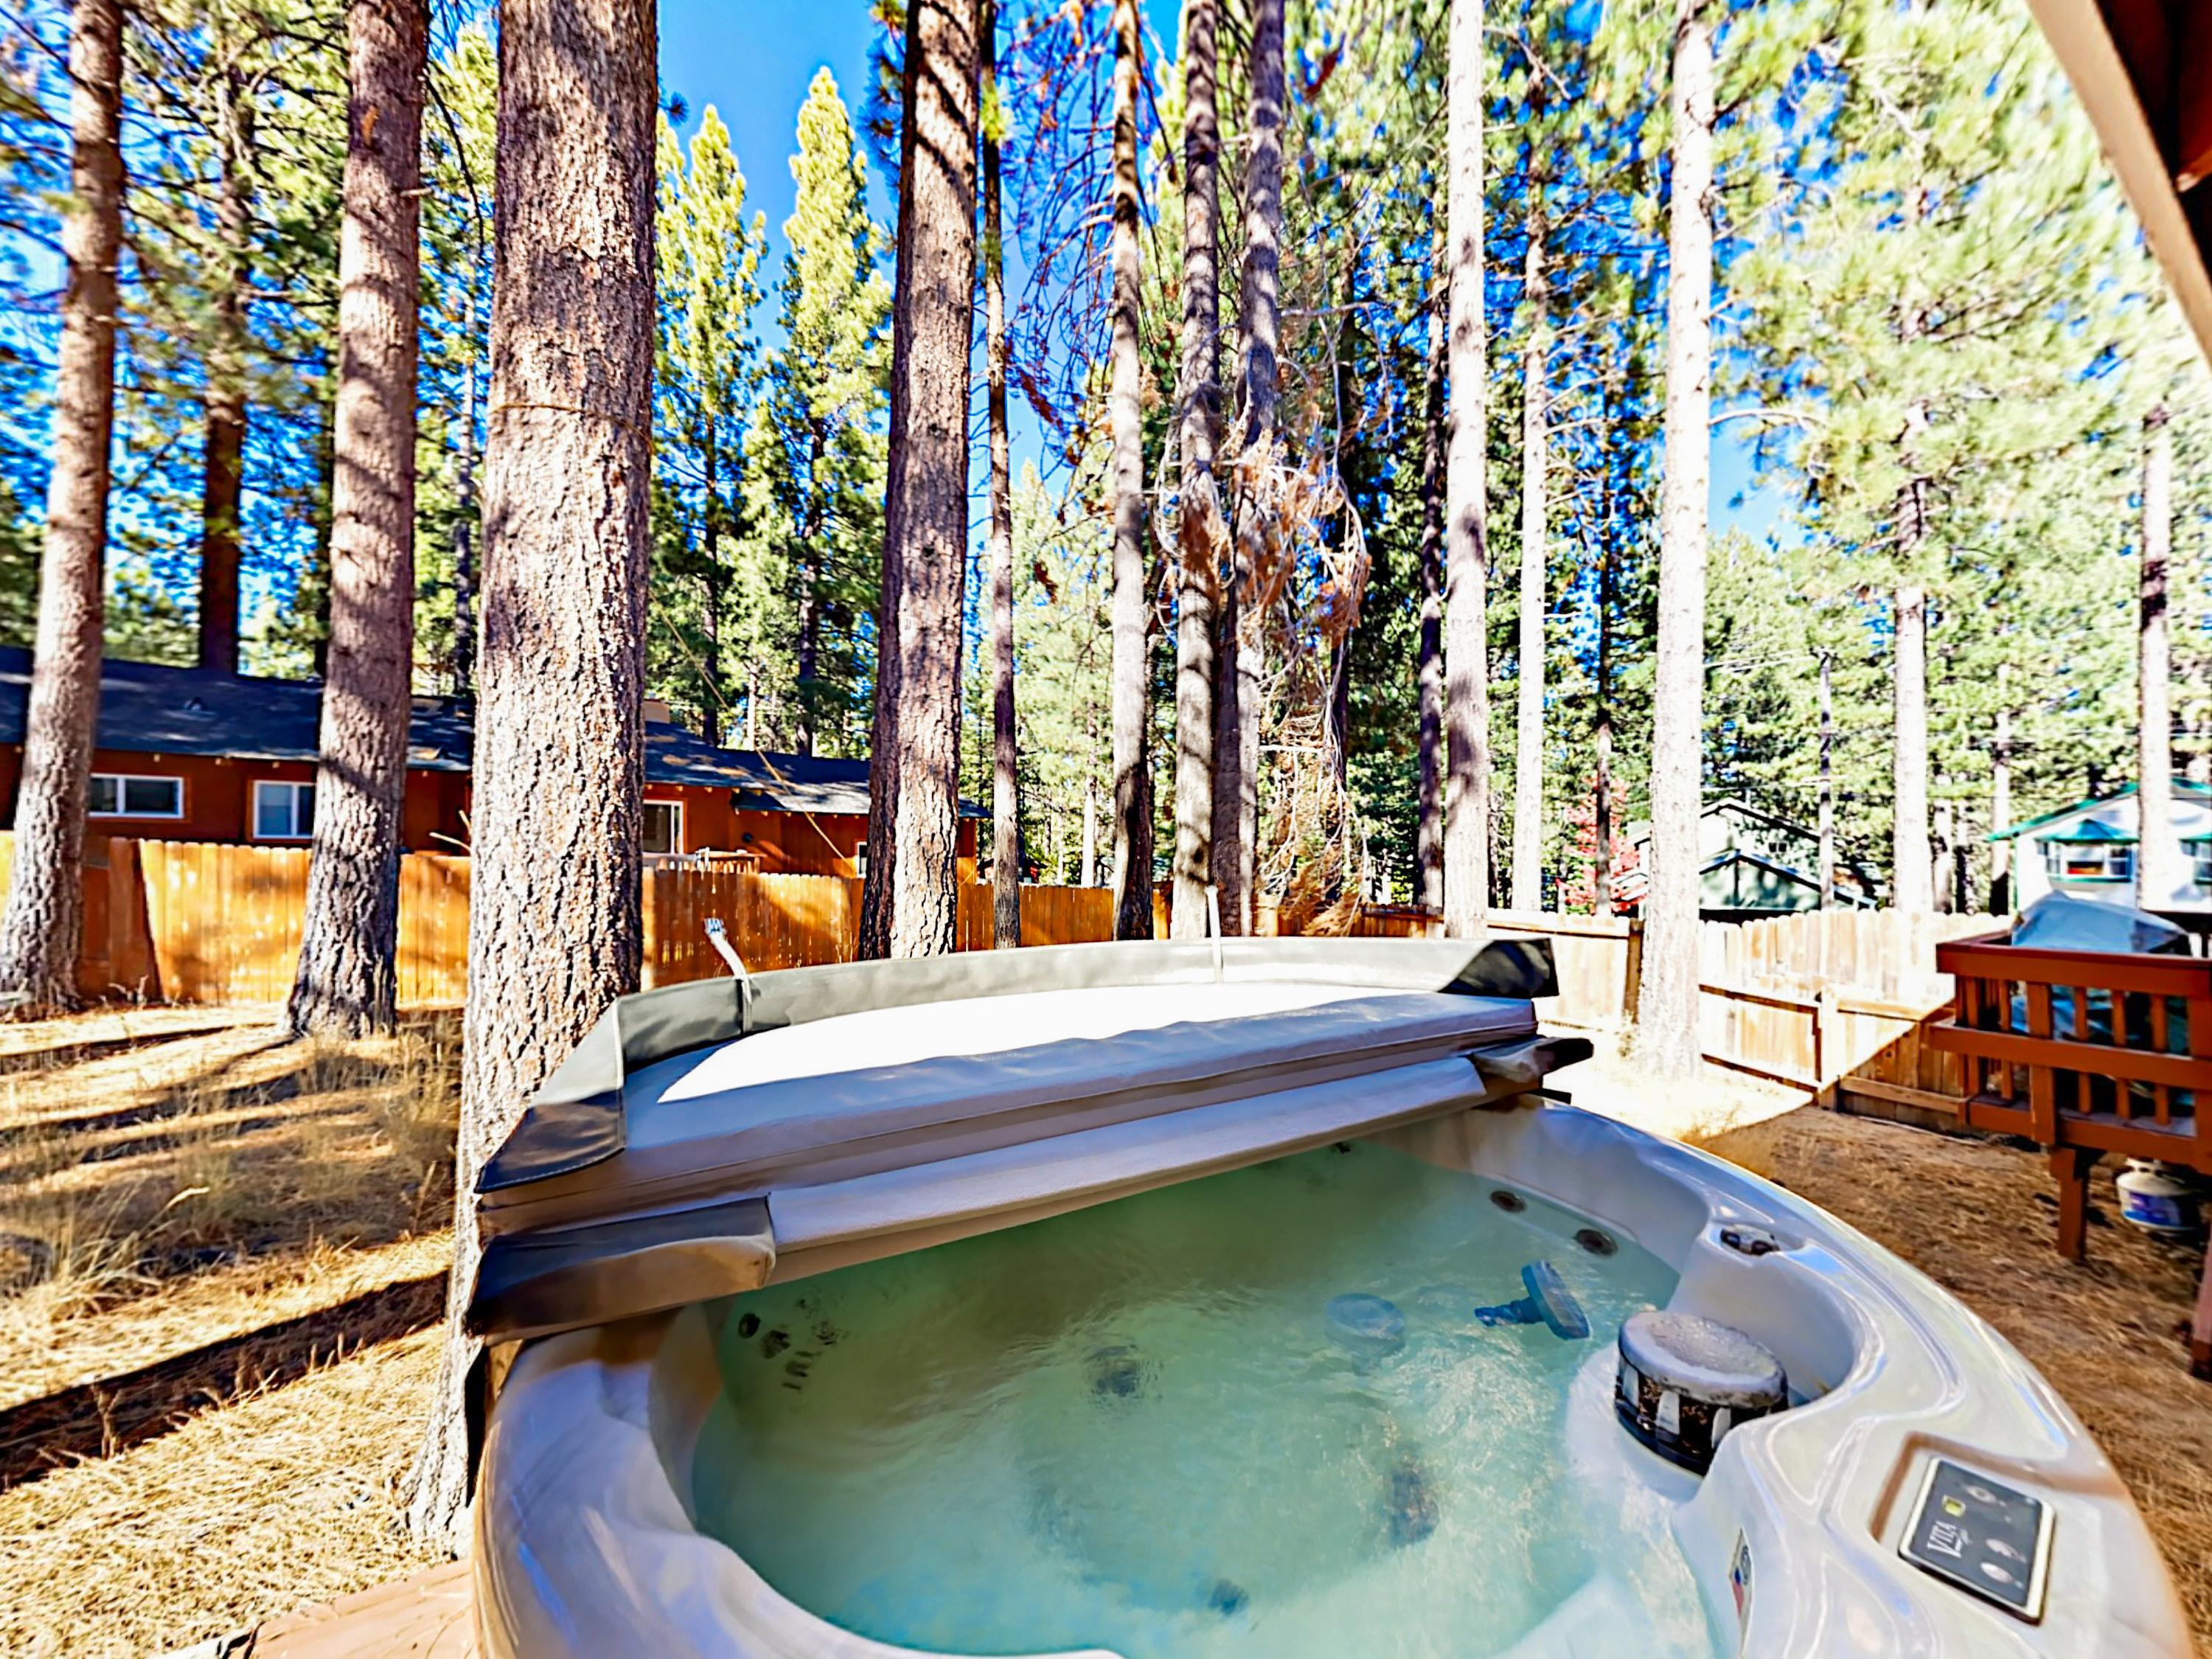 Relax and unwind in the private 4-person hot tub on the deck.